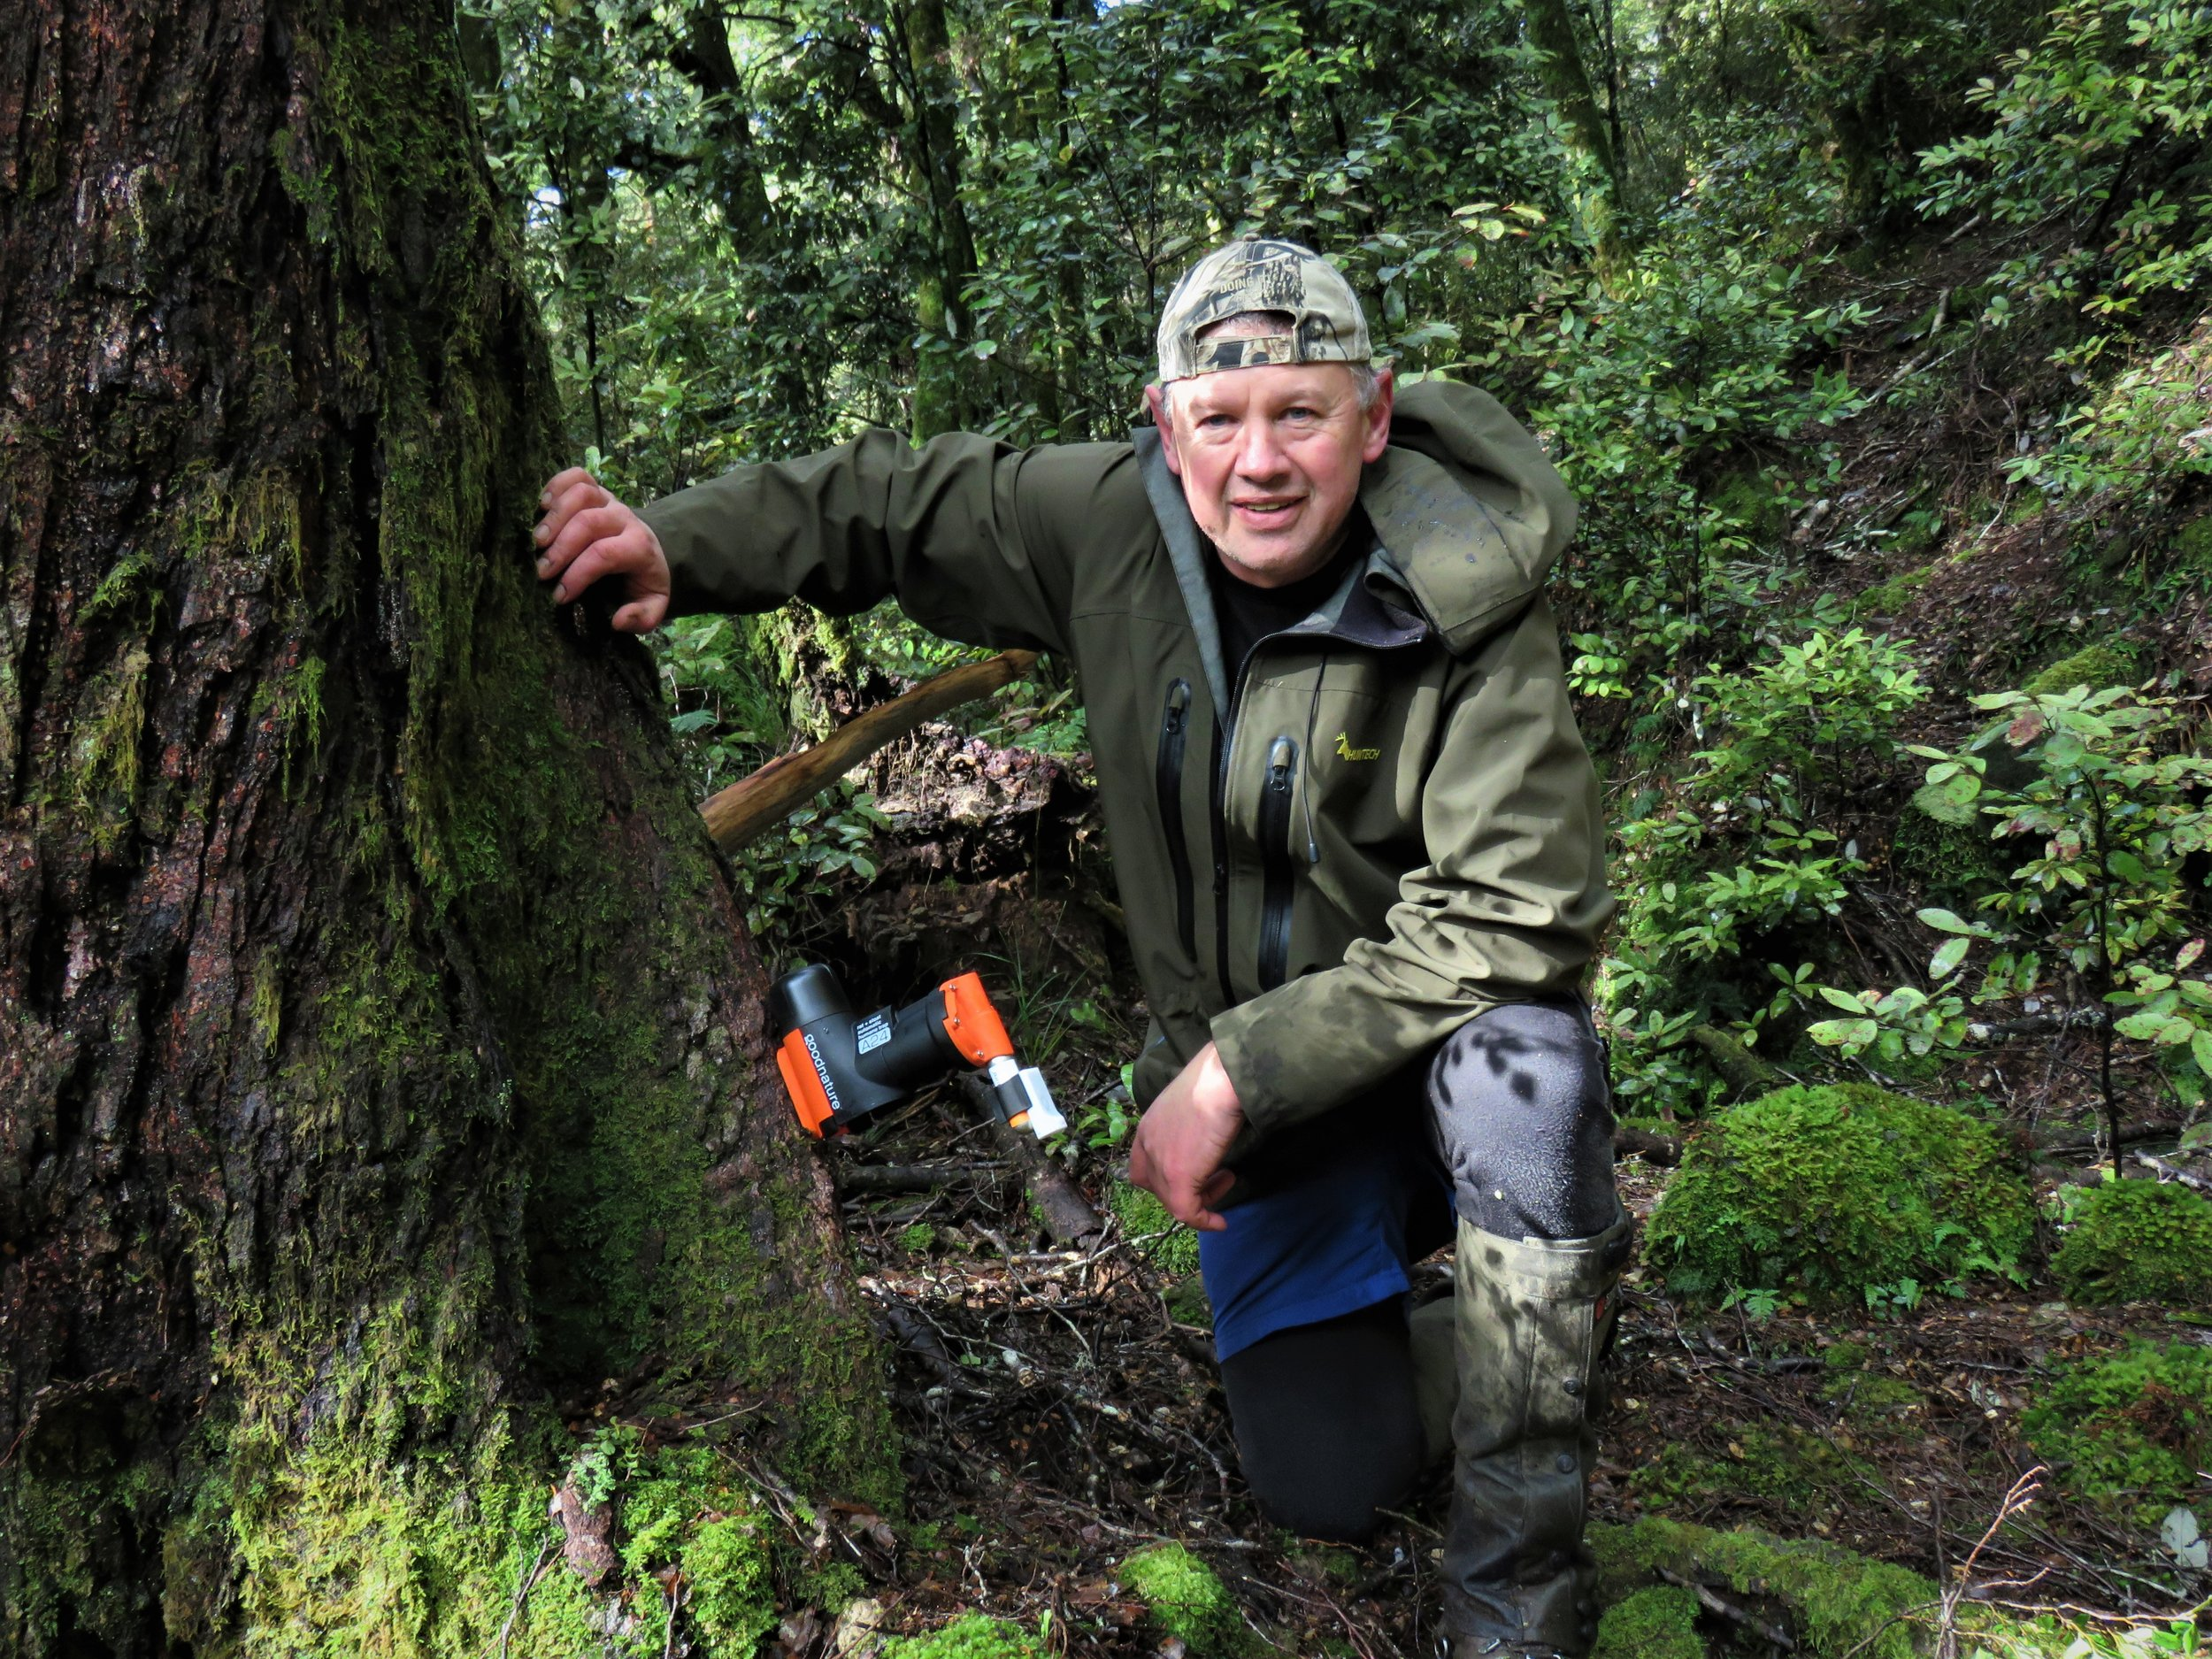 Marty Noakes on the job setting a goodnature trap - image supplied